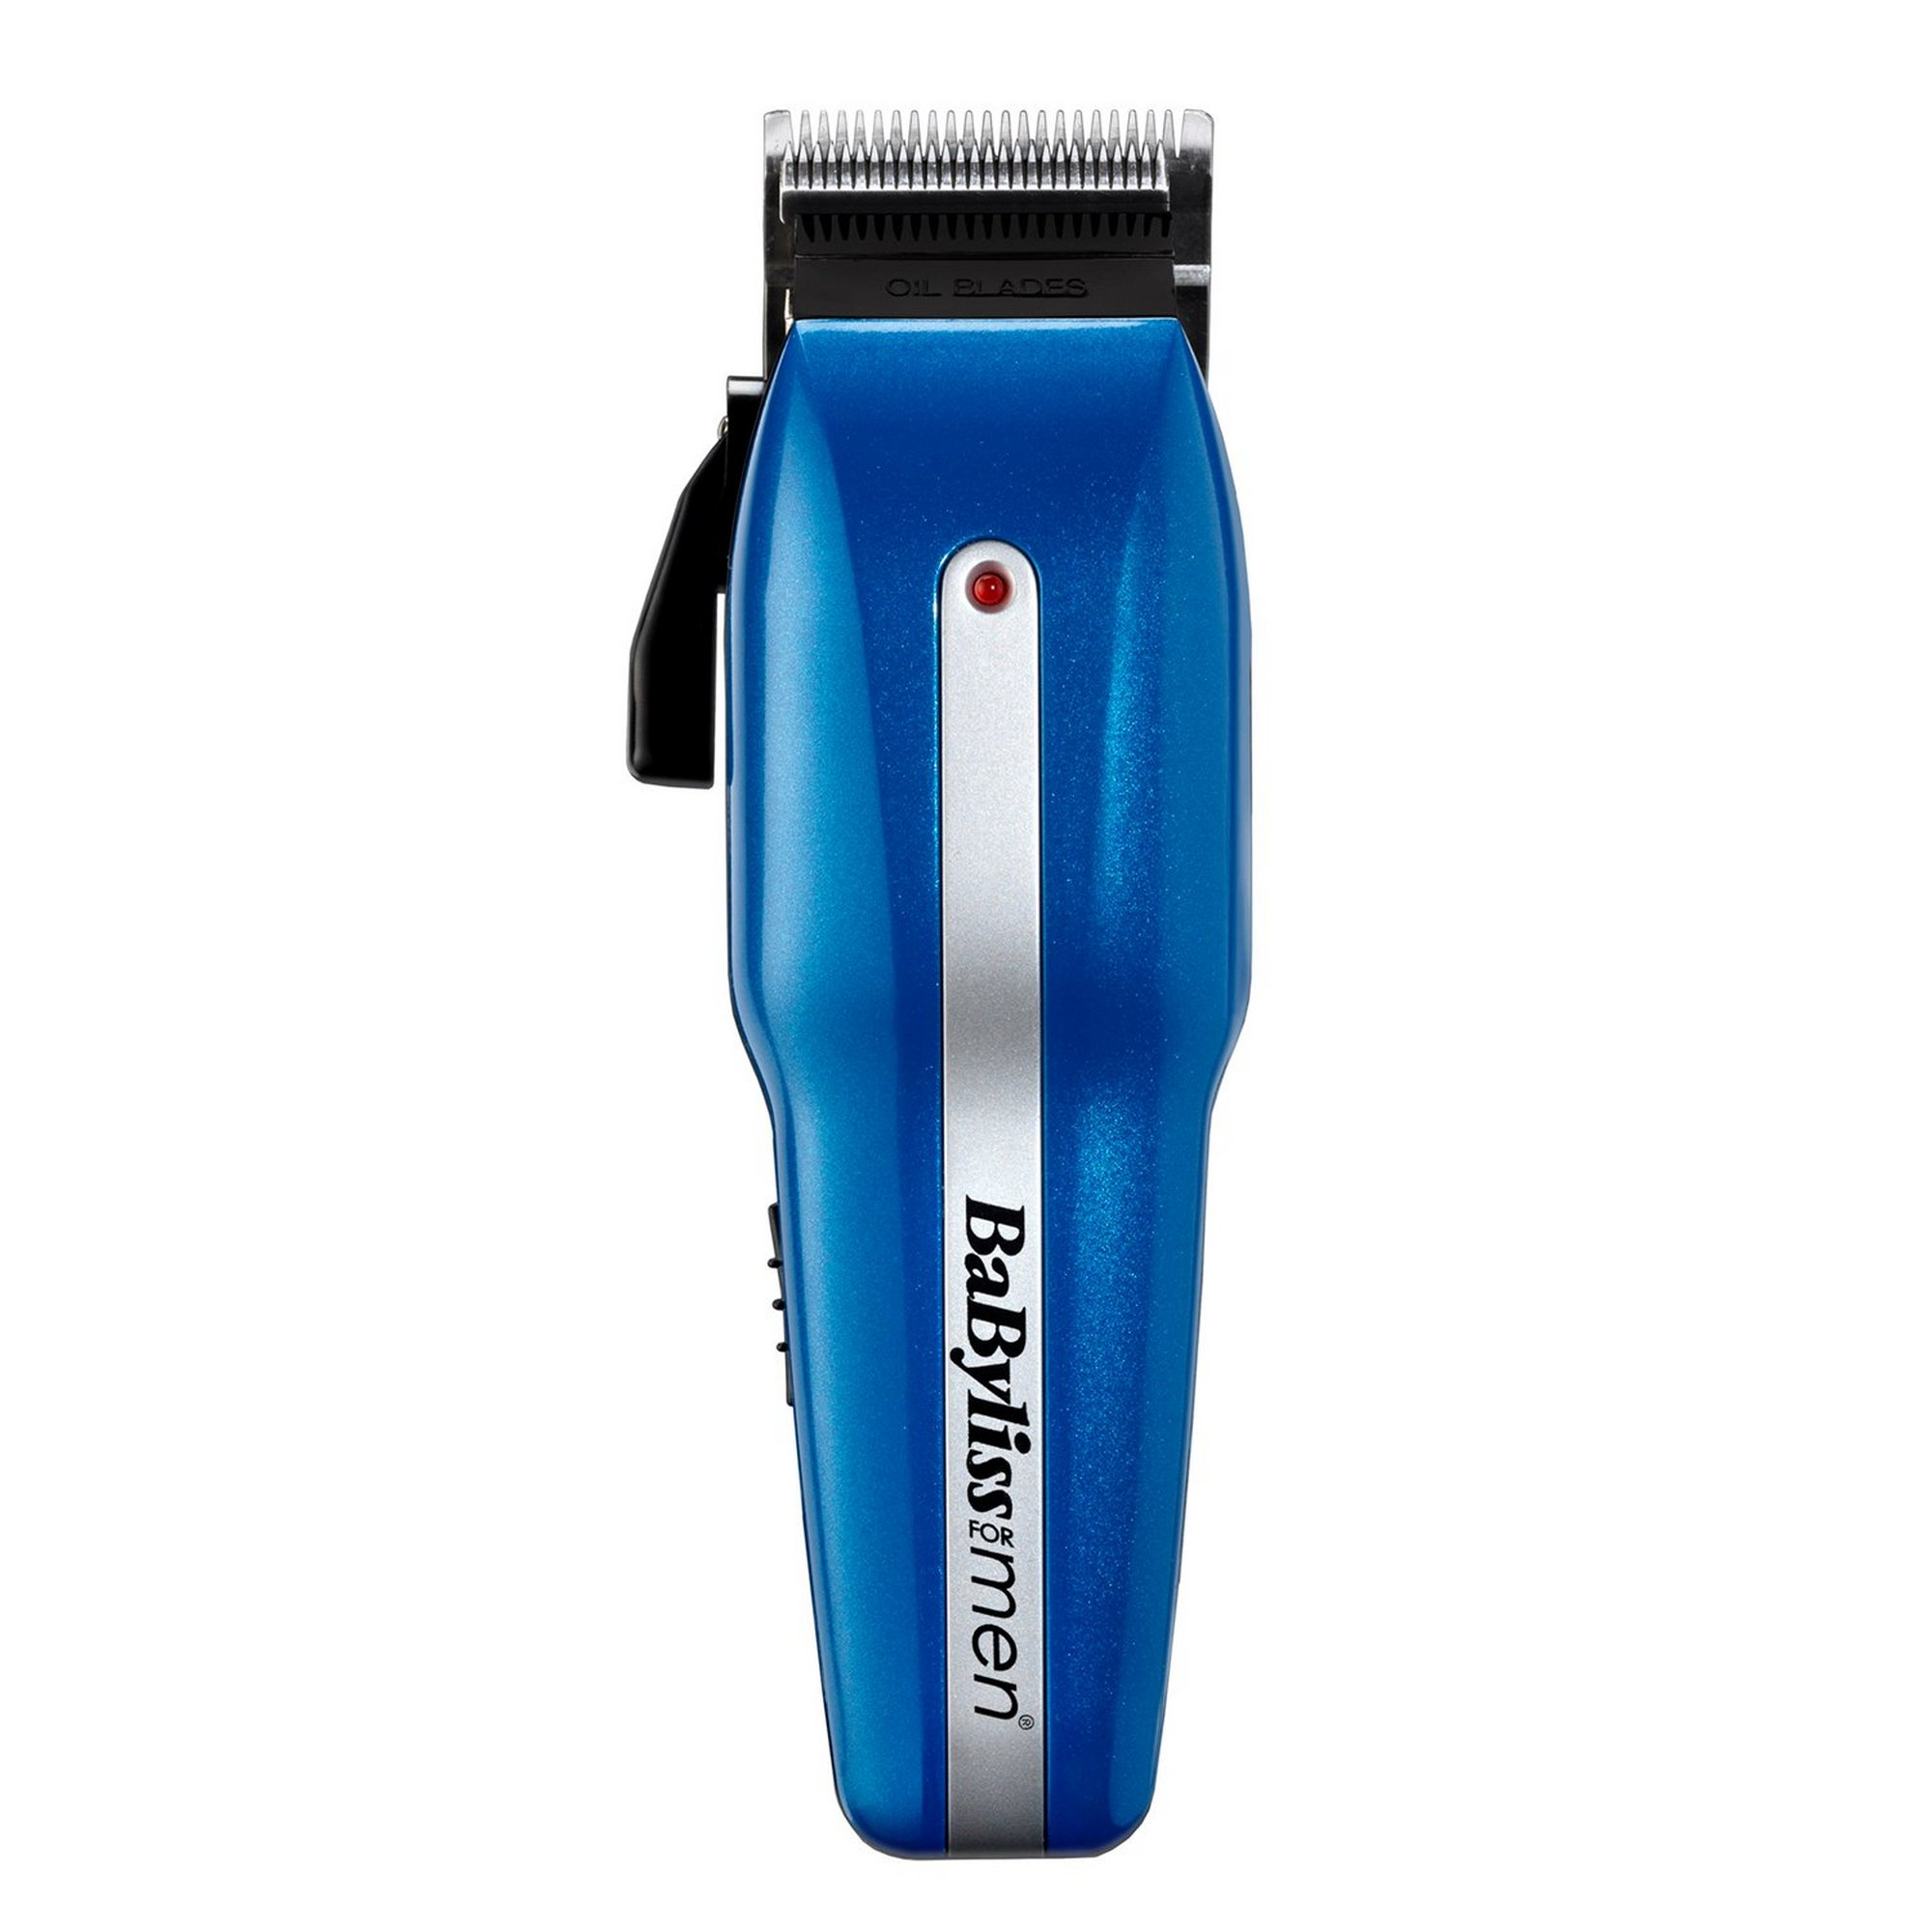 Image of BaByliss Powerlight Pro Cordless Hair Clipper